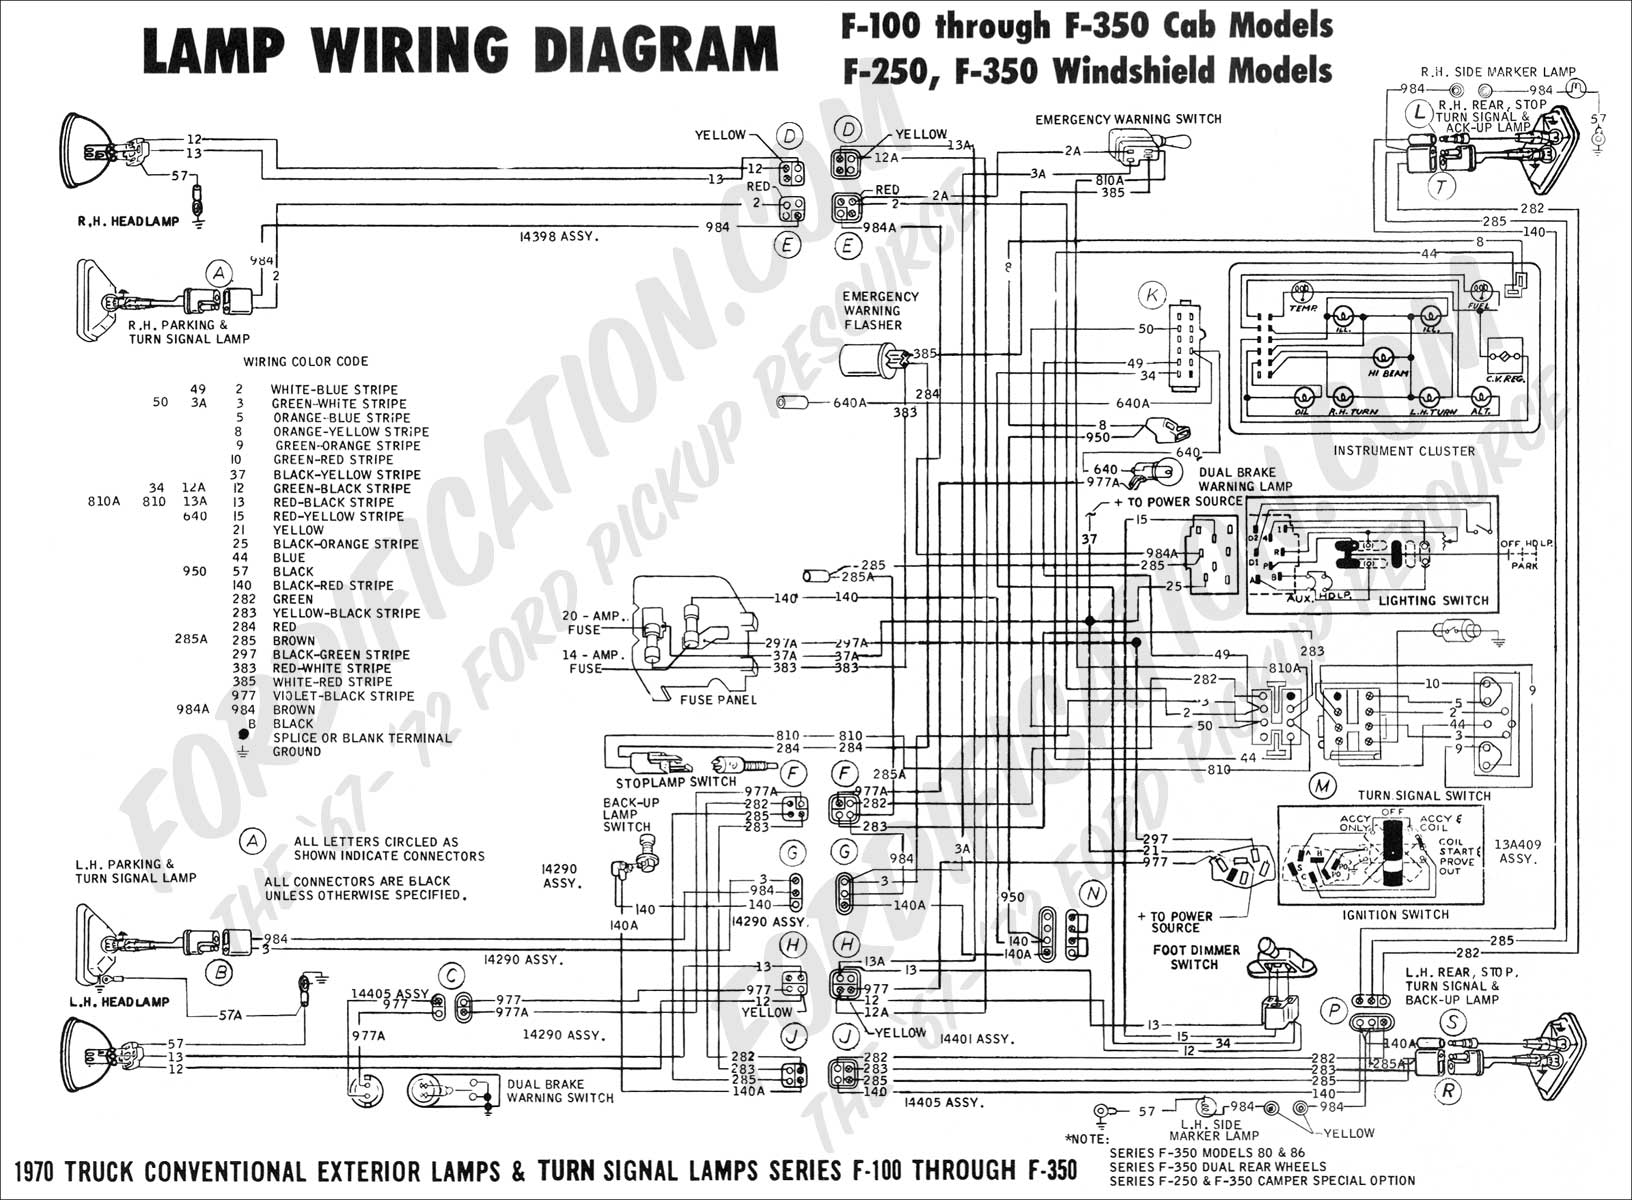 hight resolution of 2014 f 250 wiring diagram wiring diagrams scematic 04 f250 wiring diagram 2014 f 250 wiring diagram